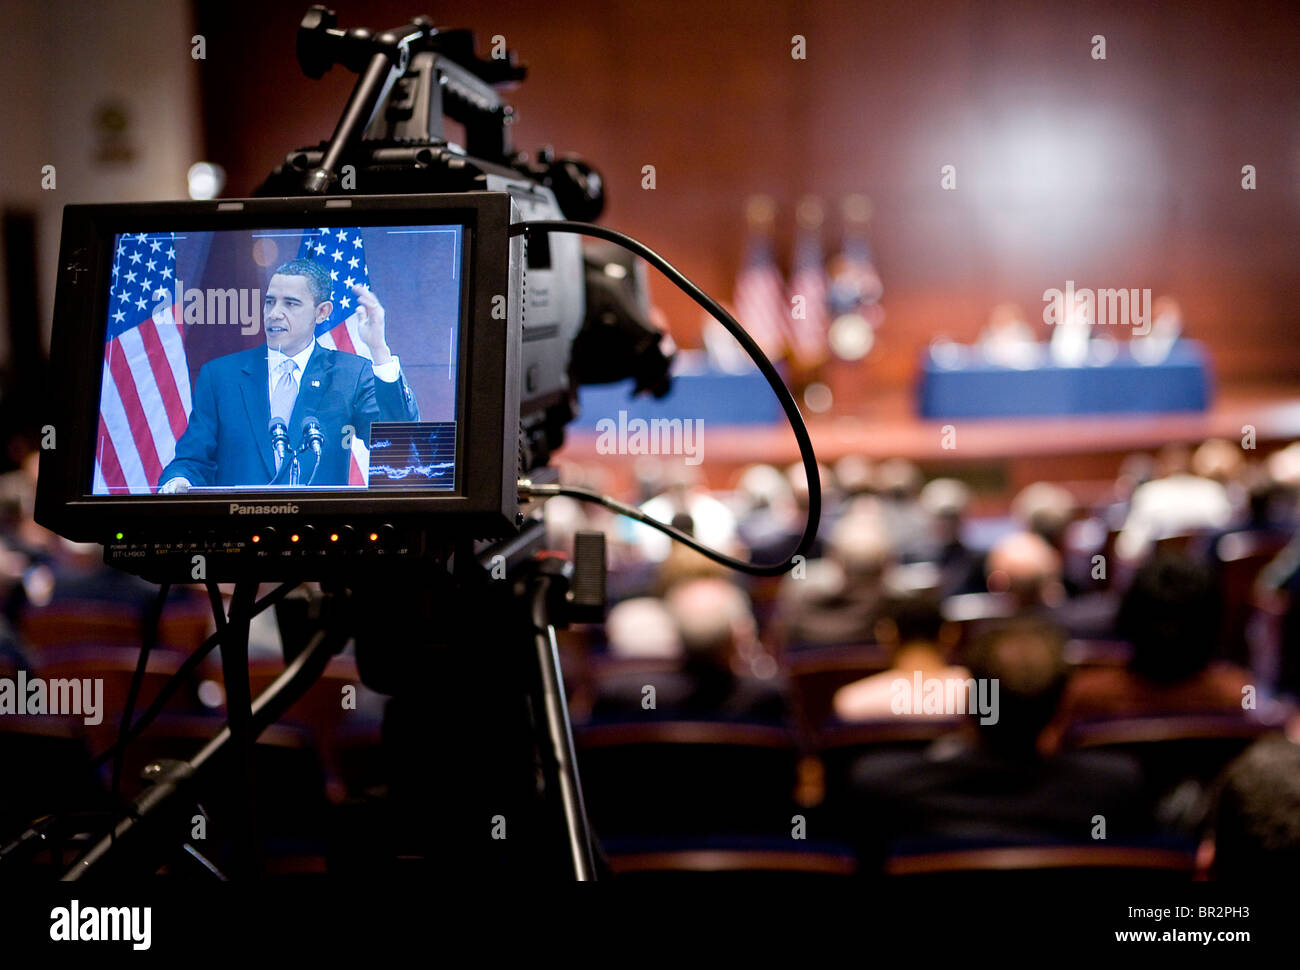 President Barack Obama speaks to members of congress on the eve of the healthcare overhaul vote. Stock Photo